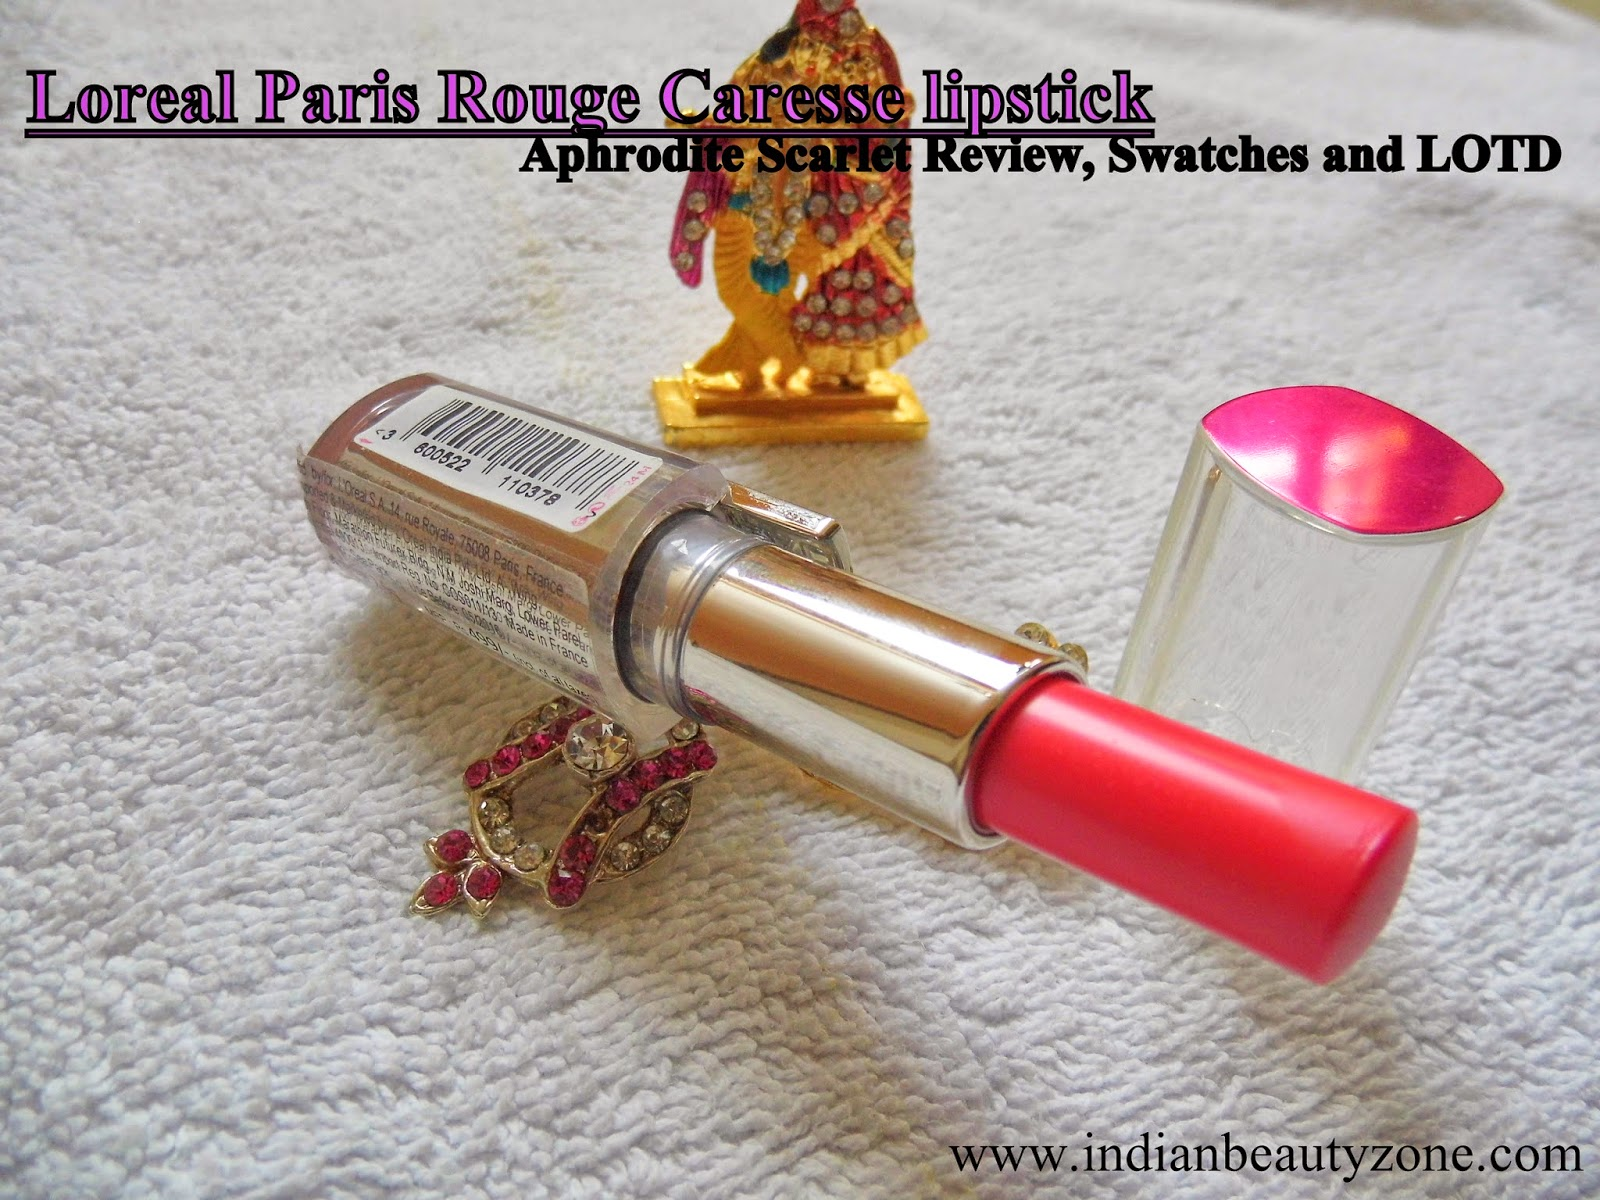 Loreal Paris Rouge Caresse lipstick Aphrodite Scarlet Swatches